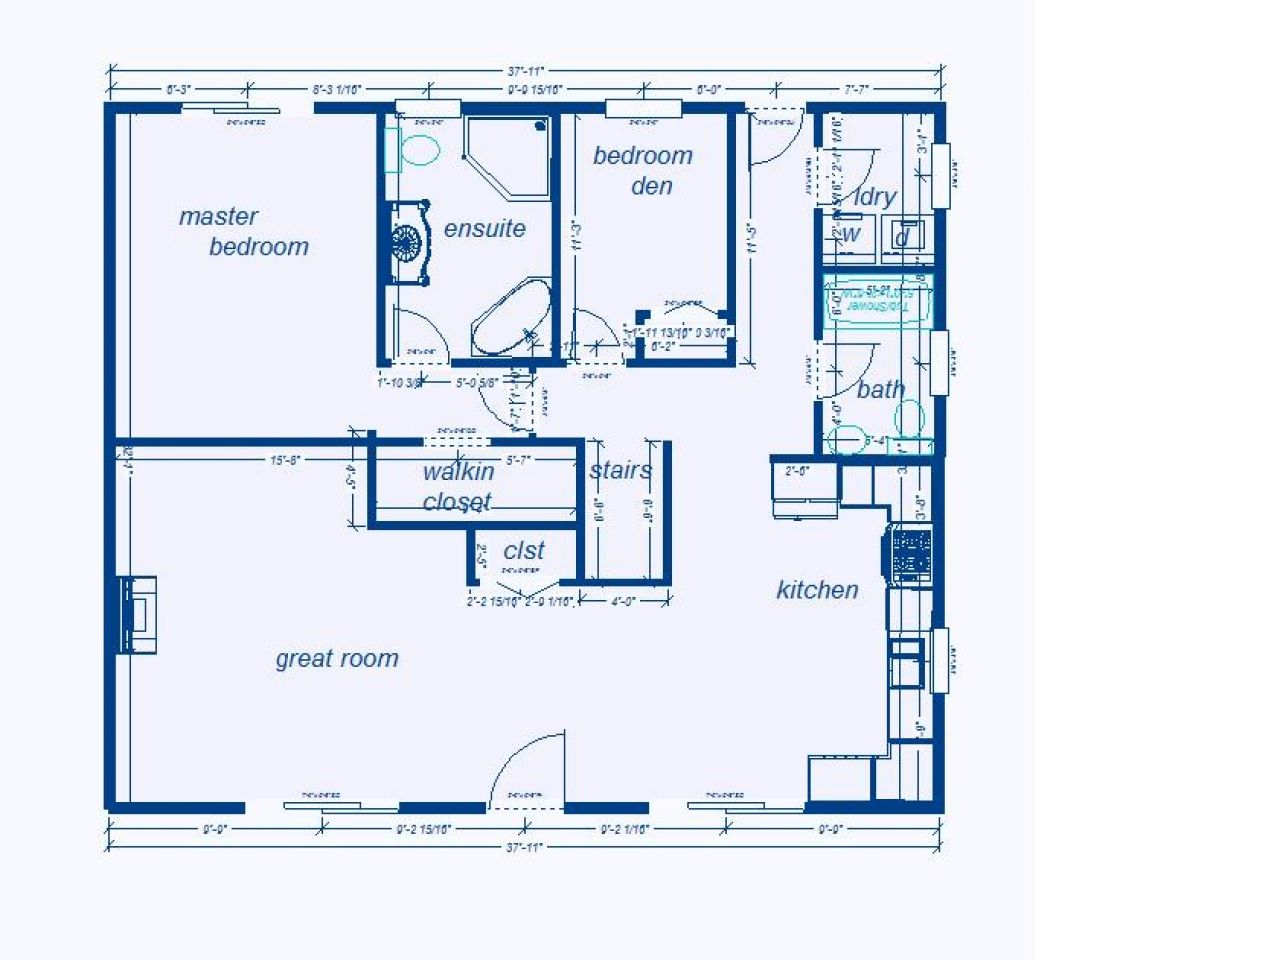 Foundation plans for houses blueprint house free in 12 top for Blue print homes